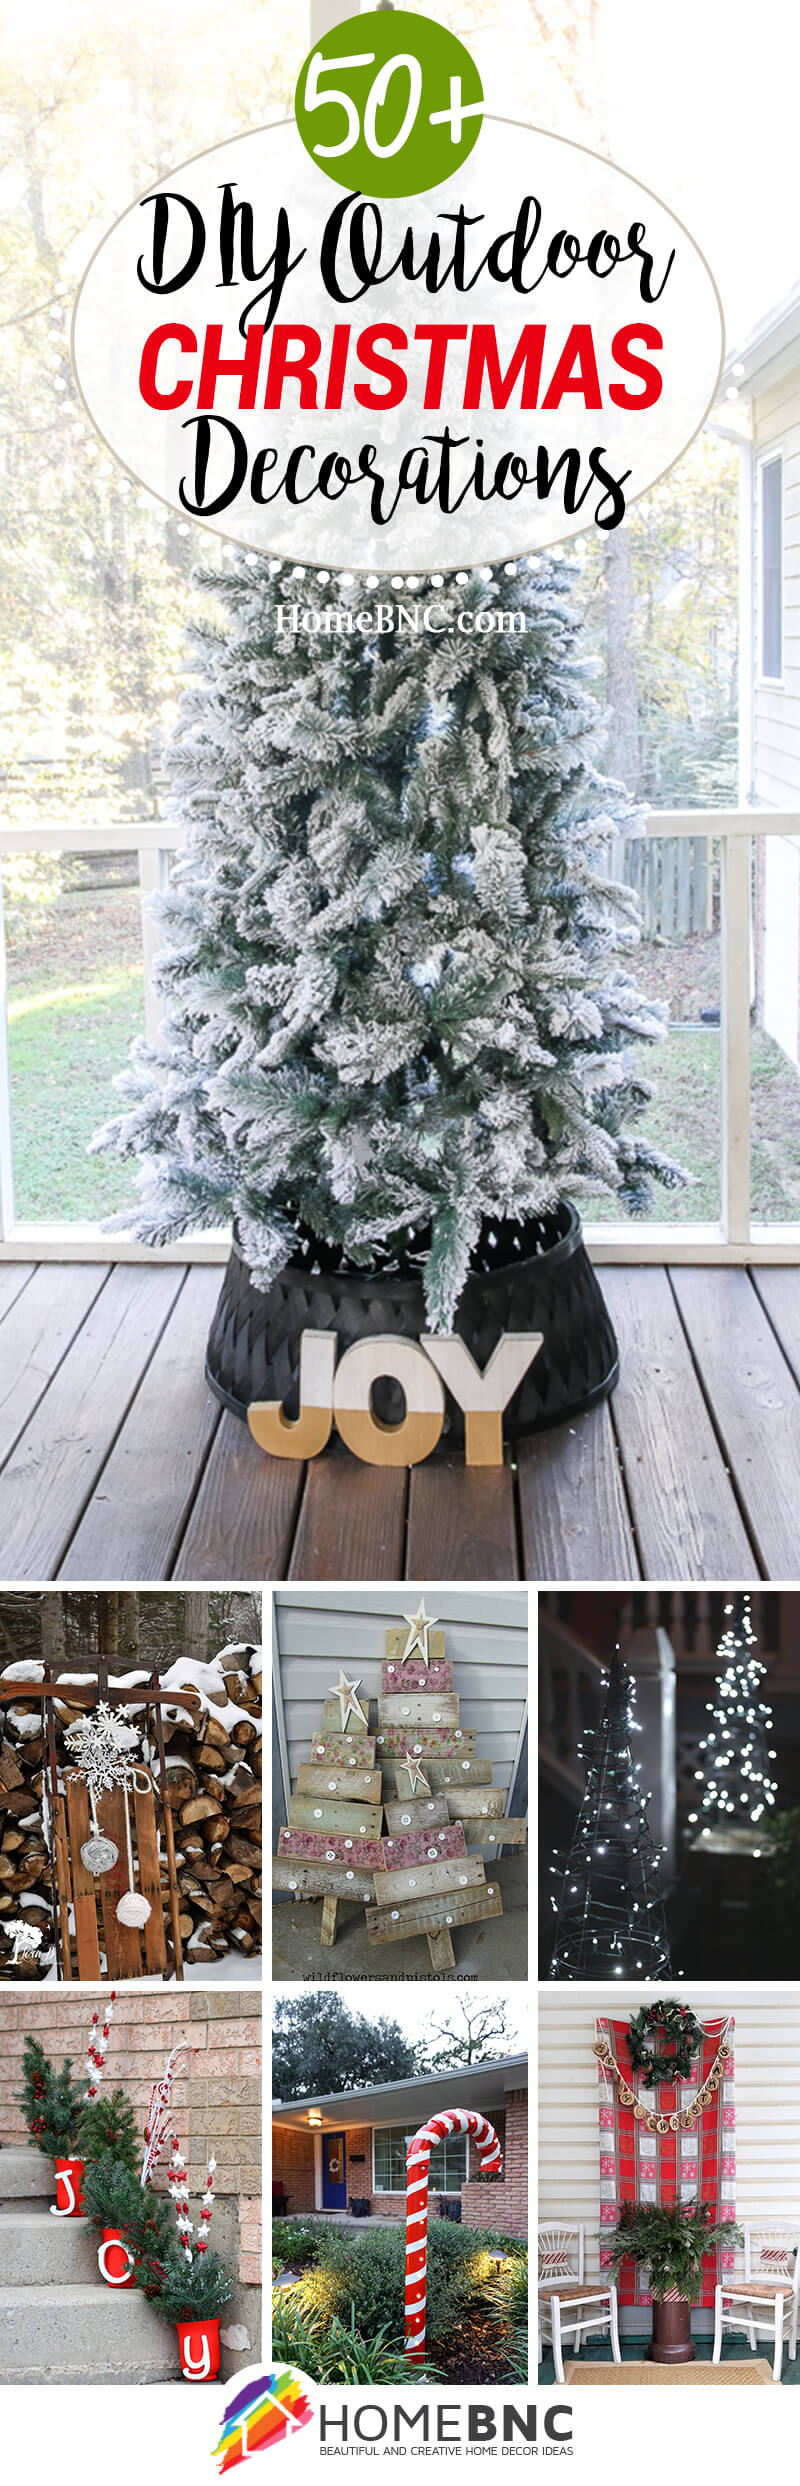 Christmas DIY Outdoor Decor Ideas